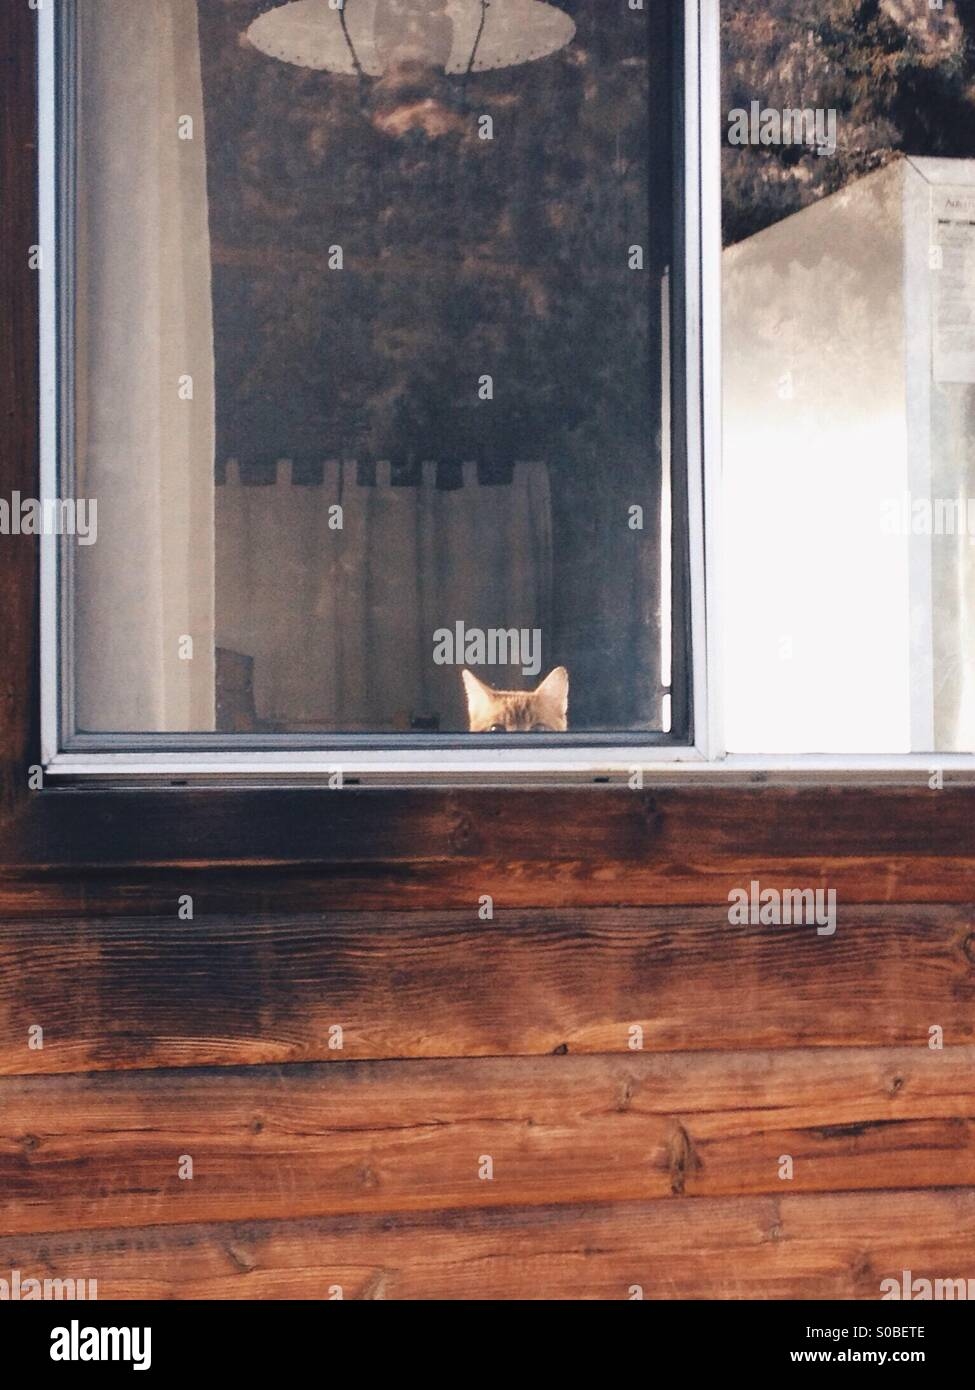 Cat peering out the window - Stock Image